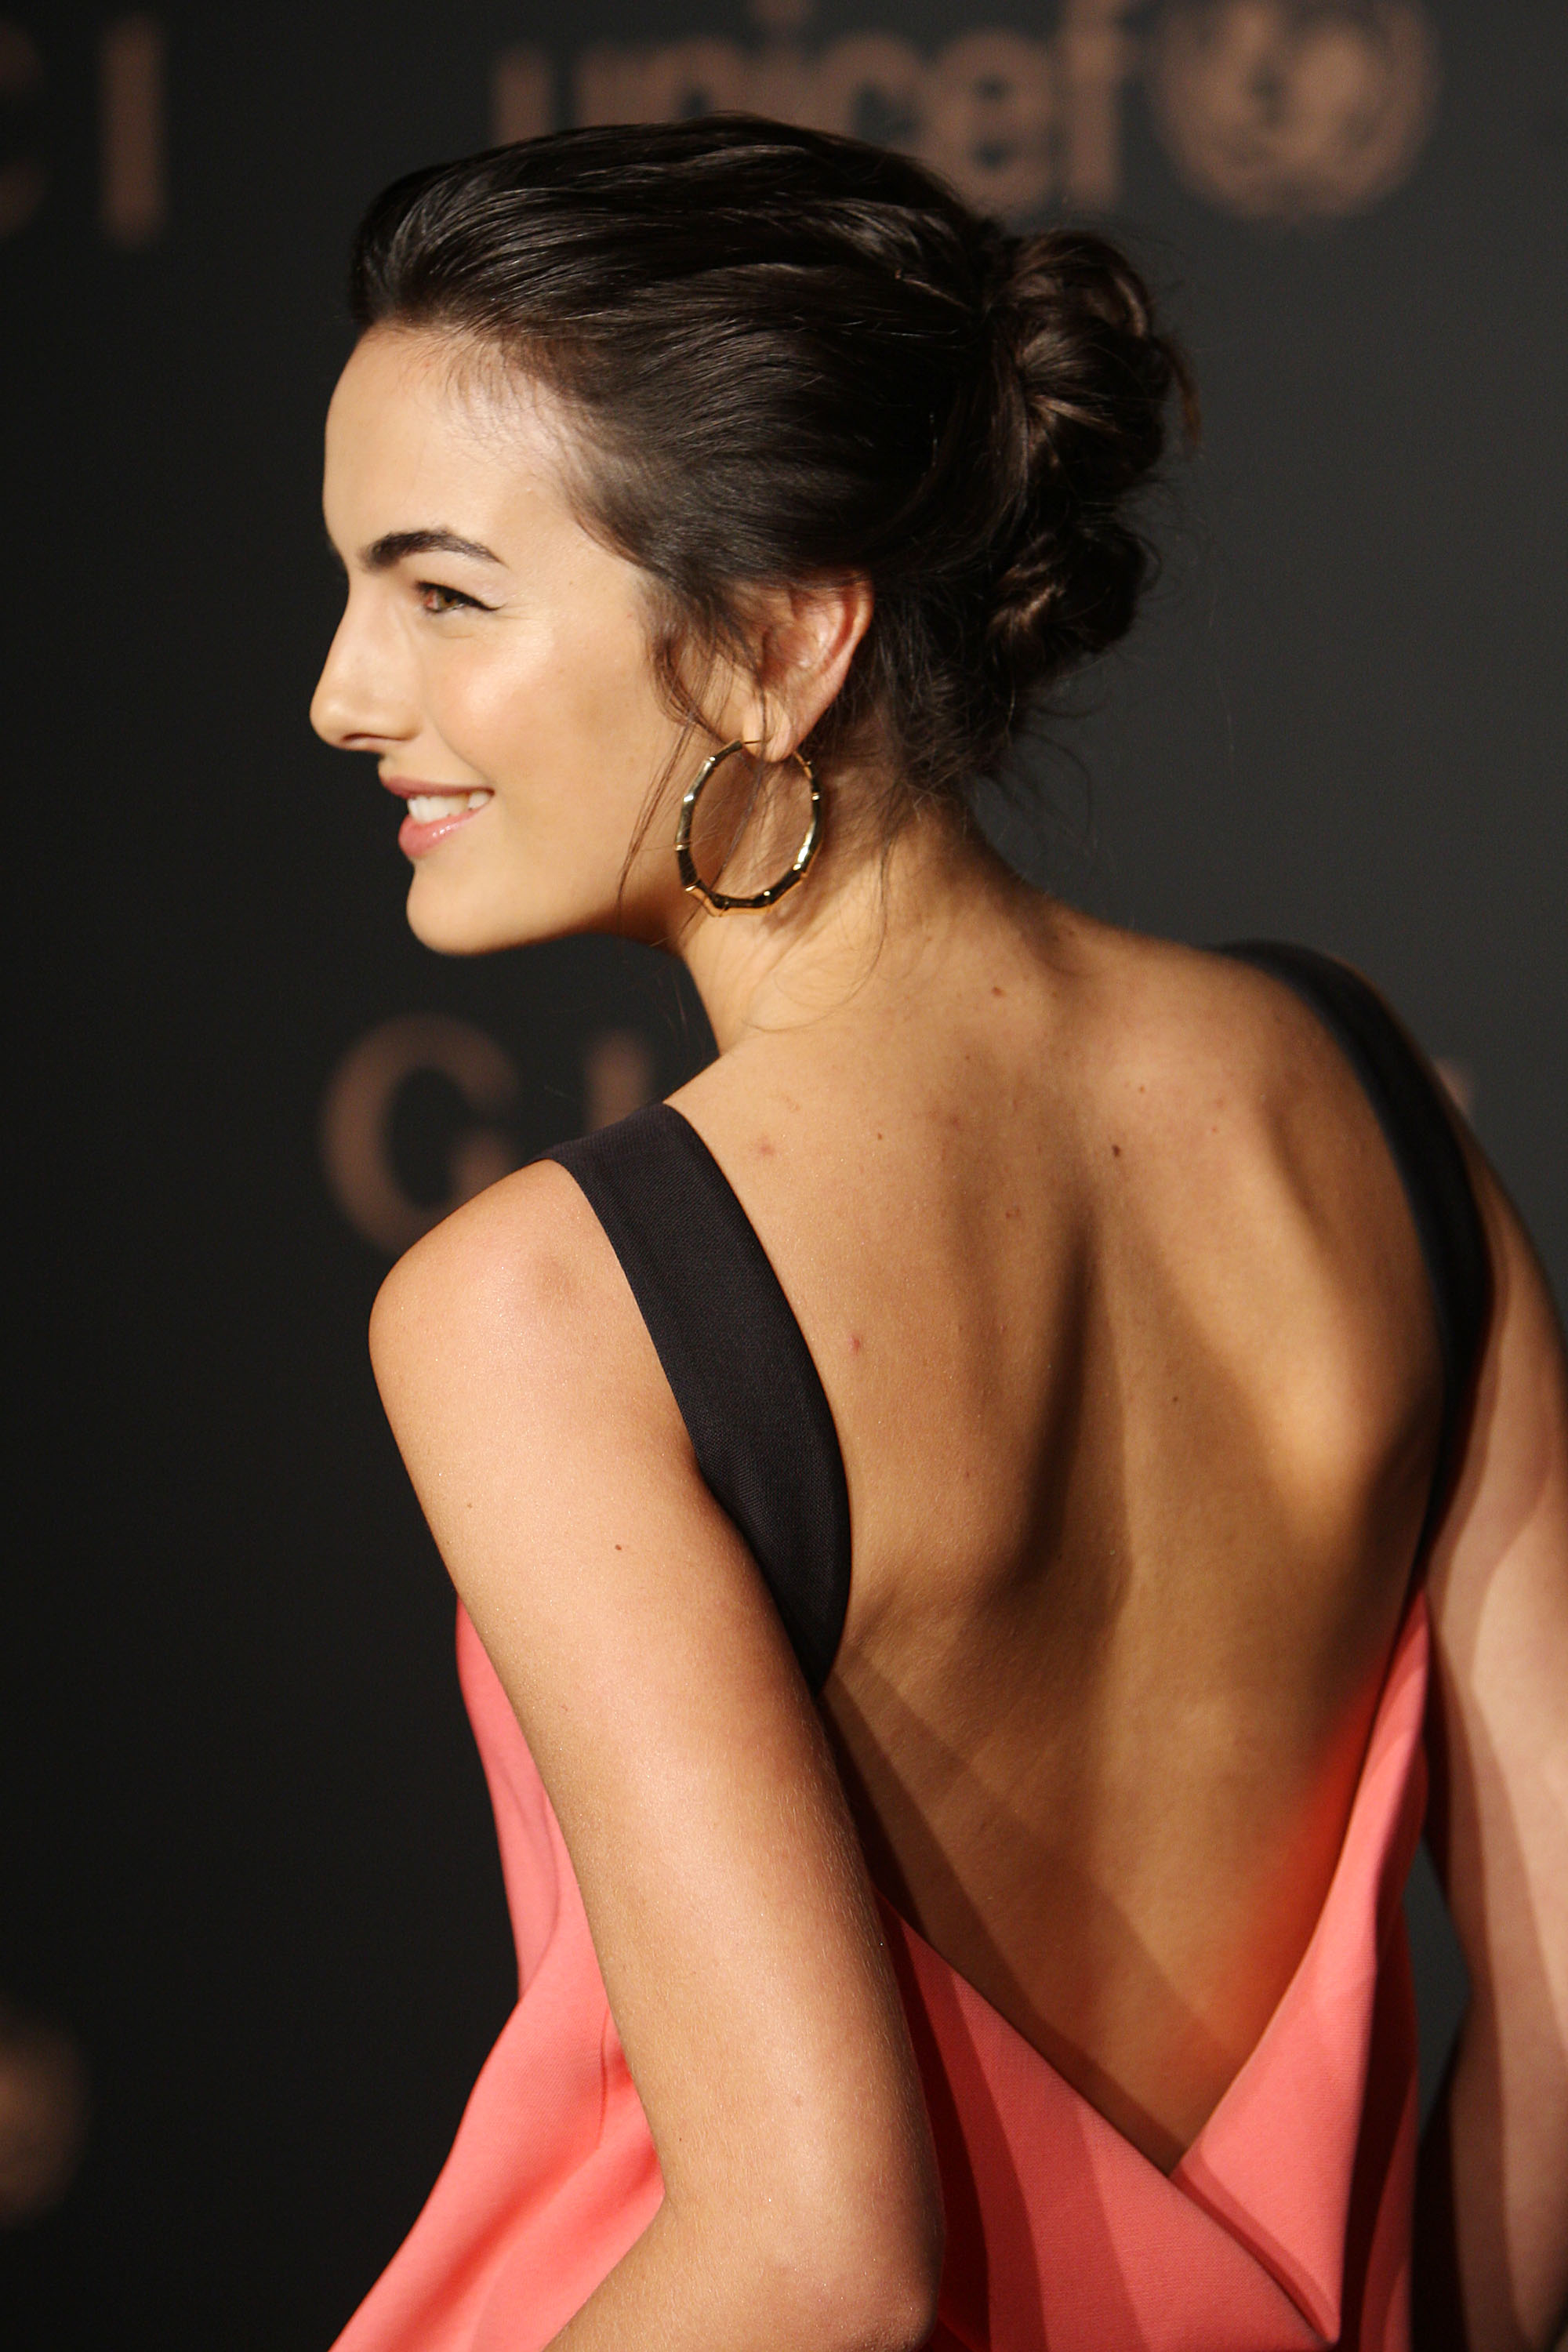 Hot Camilla Belle naked (83 foto and video), Tits, Cleavage, Feet, swimsuit 2018